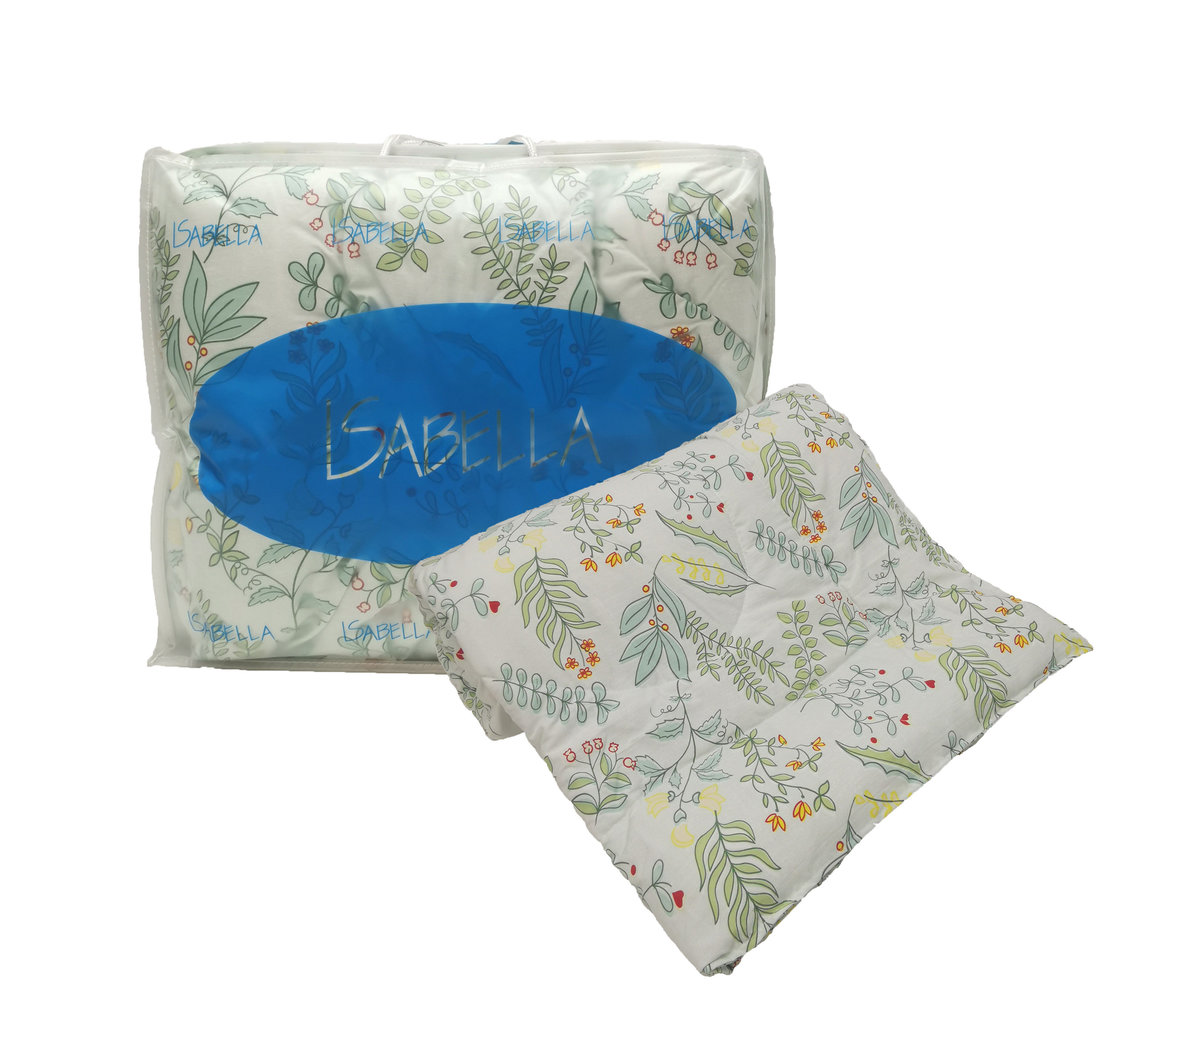 ISABELLA Printed Summer Quilt (Leaves),  Double